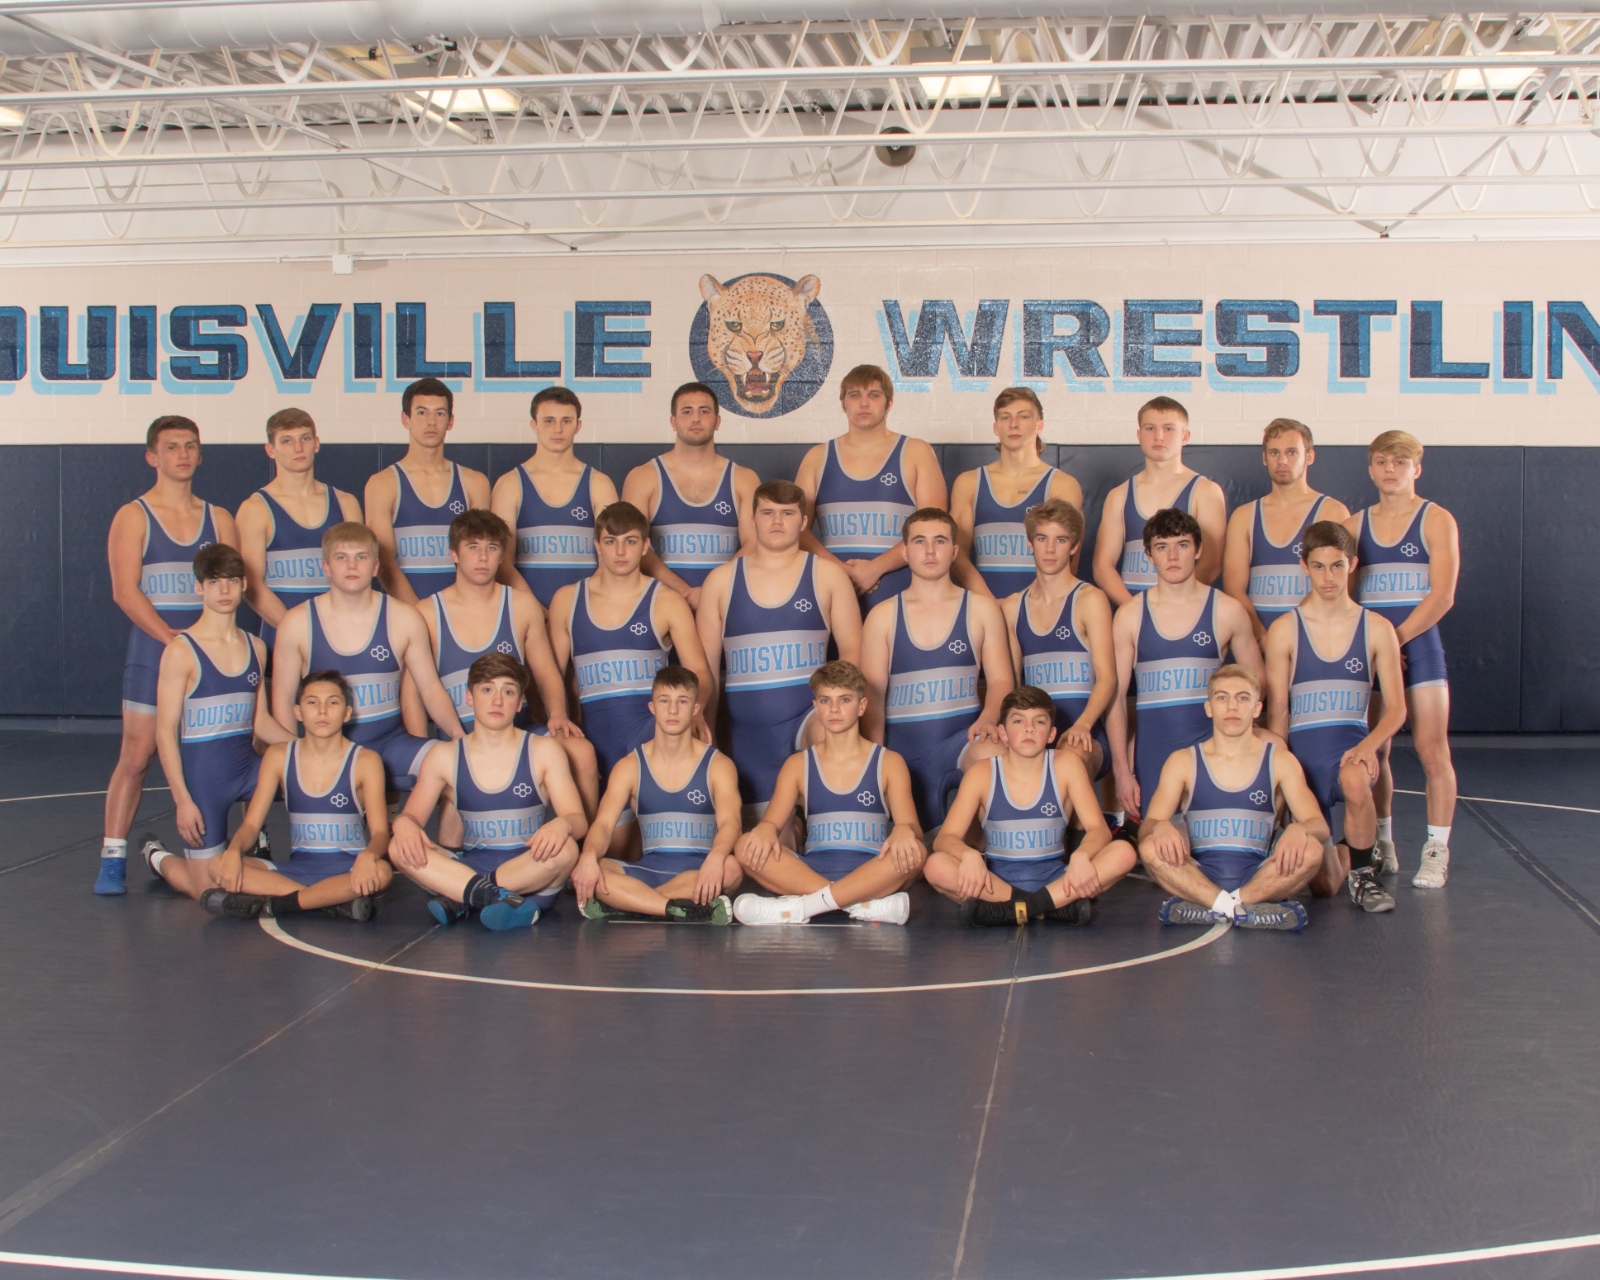 Wrestling You Don't Want to Miss, Jan. 23 at 7 pm, Louisville v Beaver Local